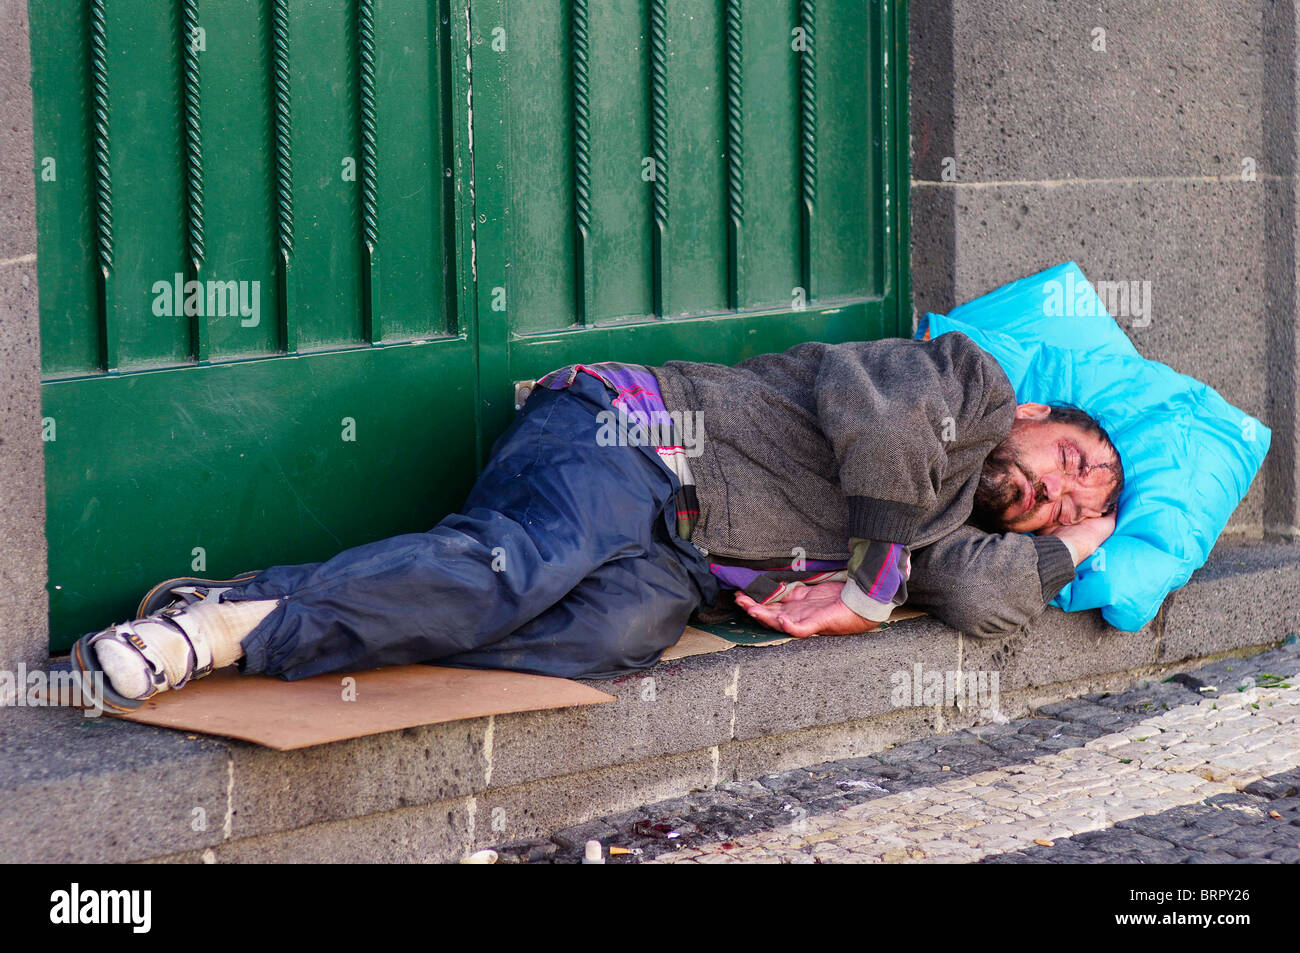 Homeless drunk and dirty men sleeping on a door step stock for Home styles com